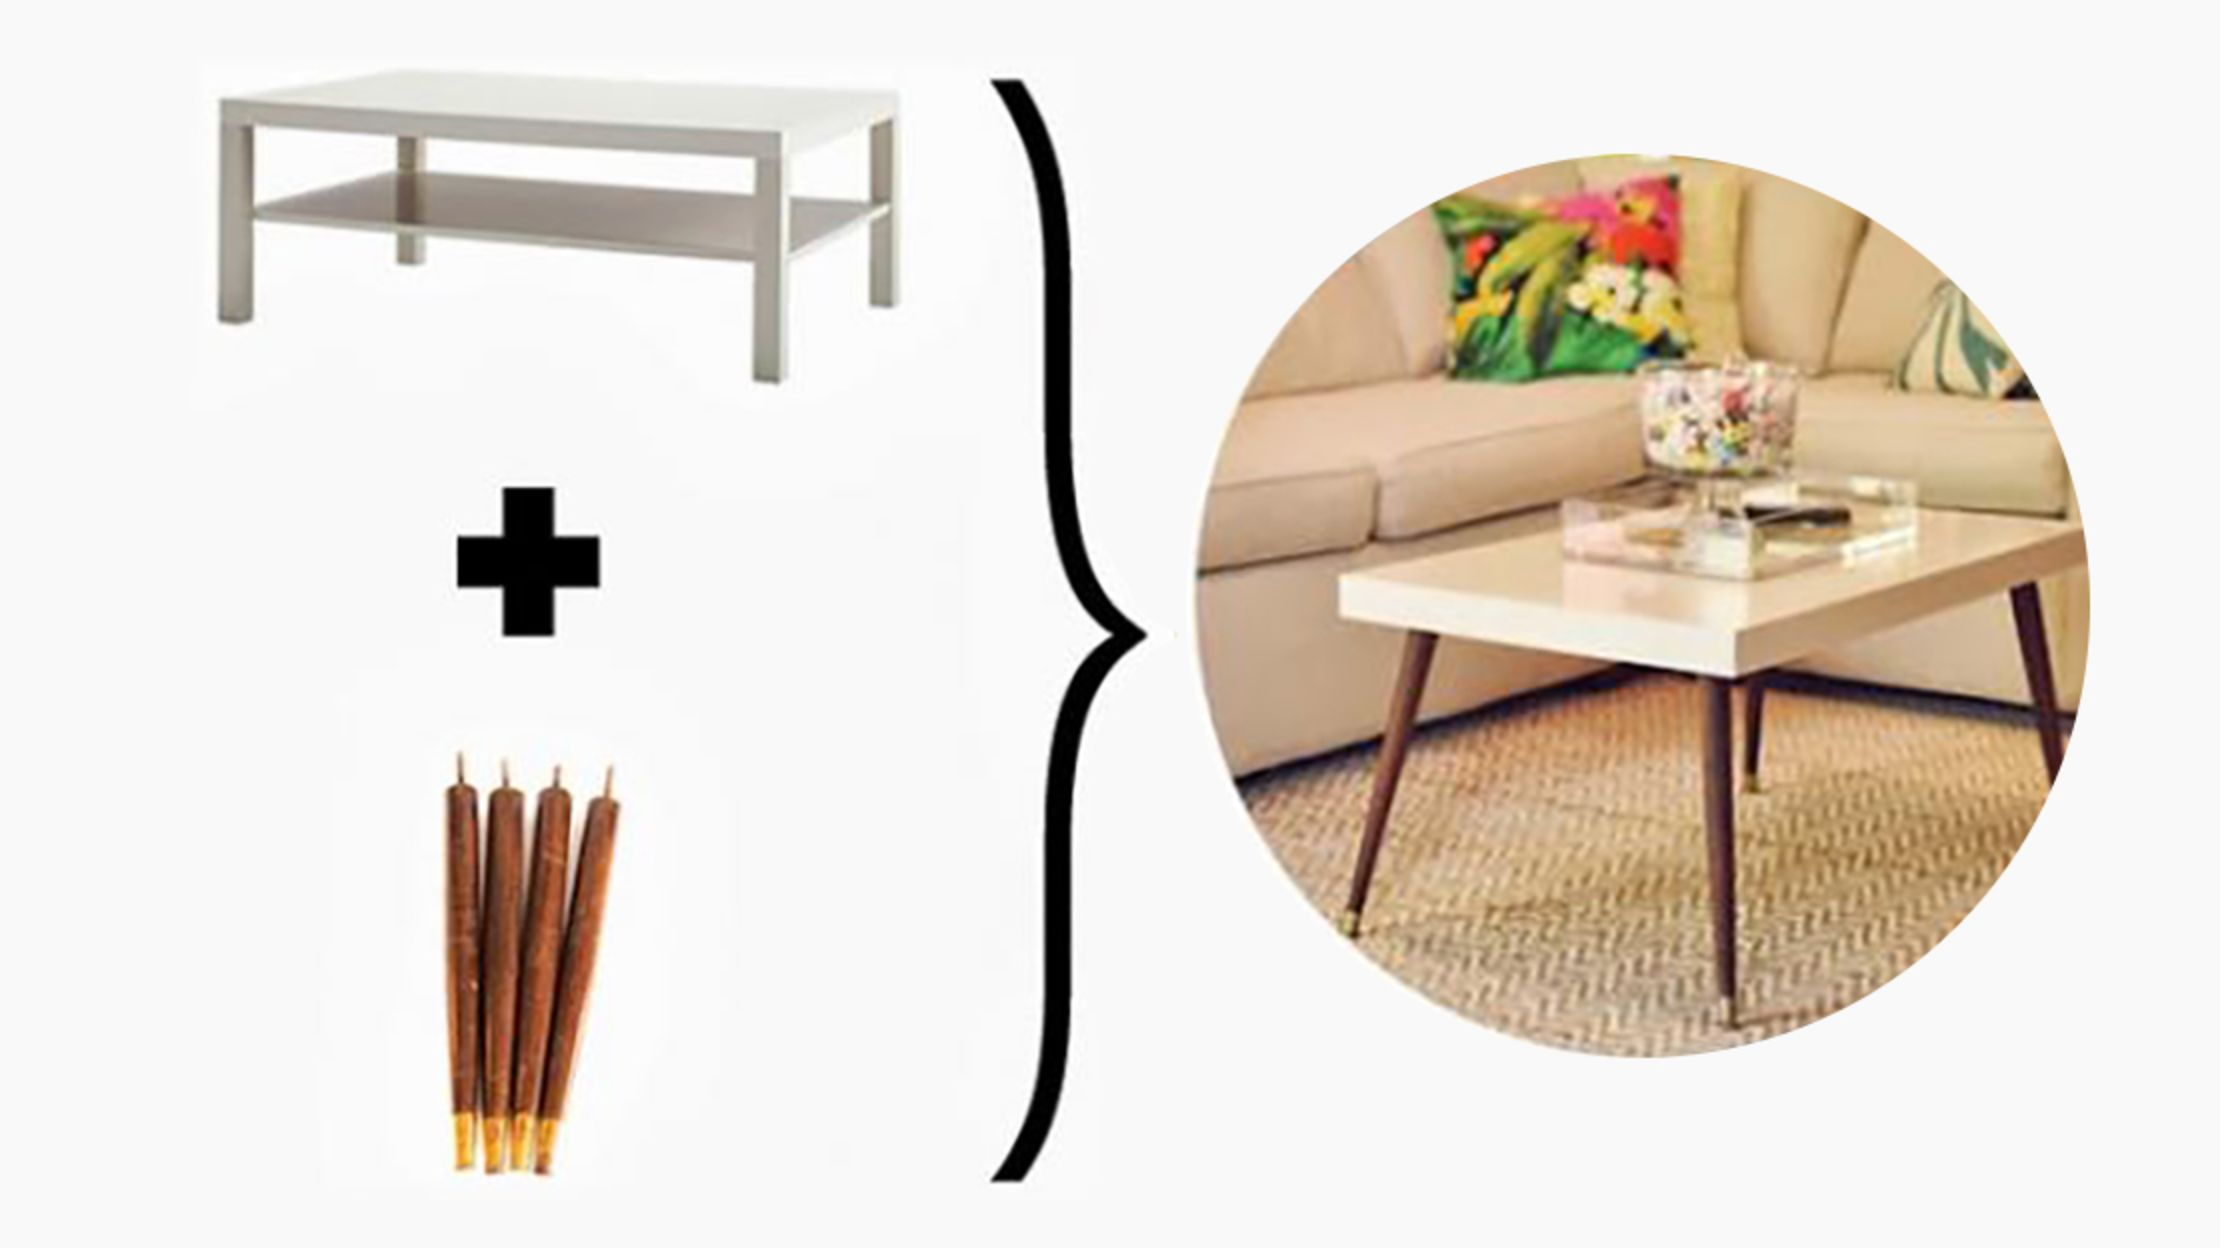 20 Excellent Ikea Hacks You Should Try Mental Floss